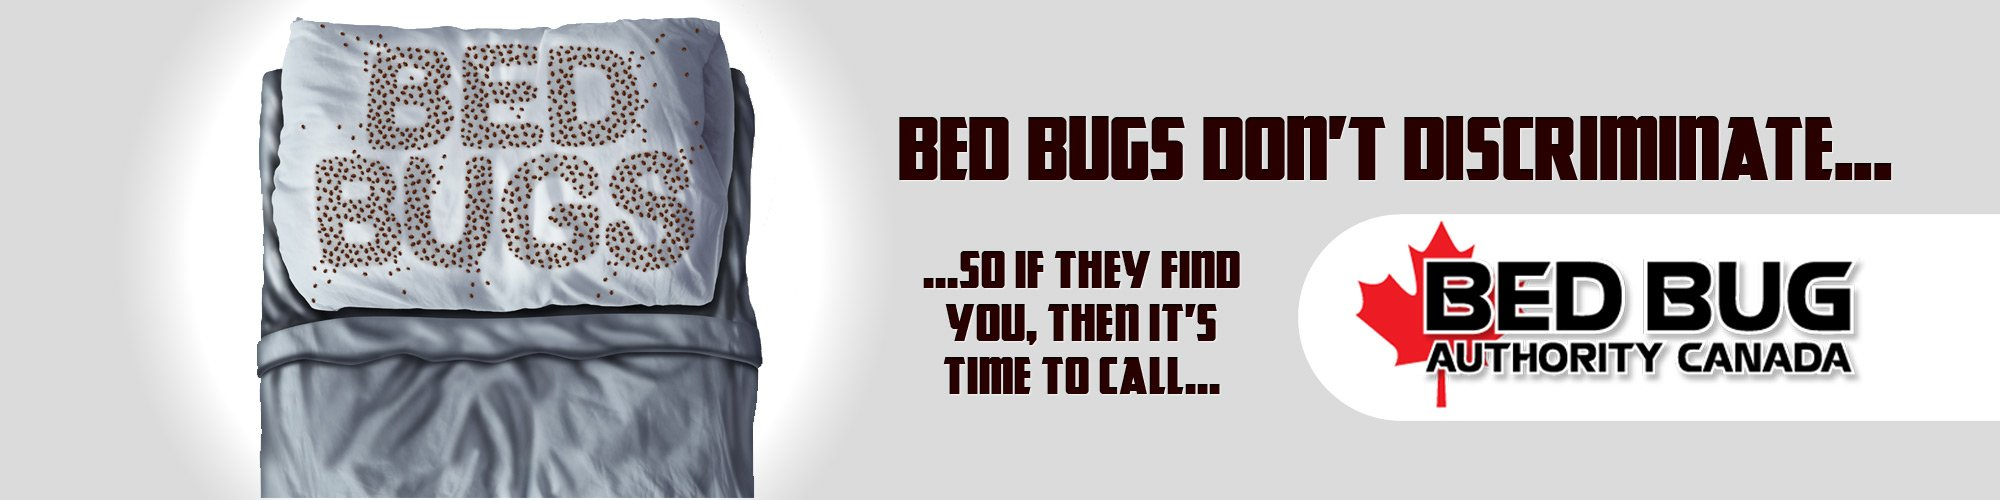 bed bug extermination toronto ontario